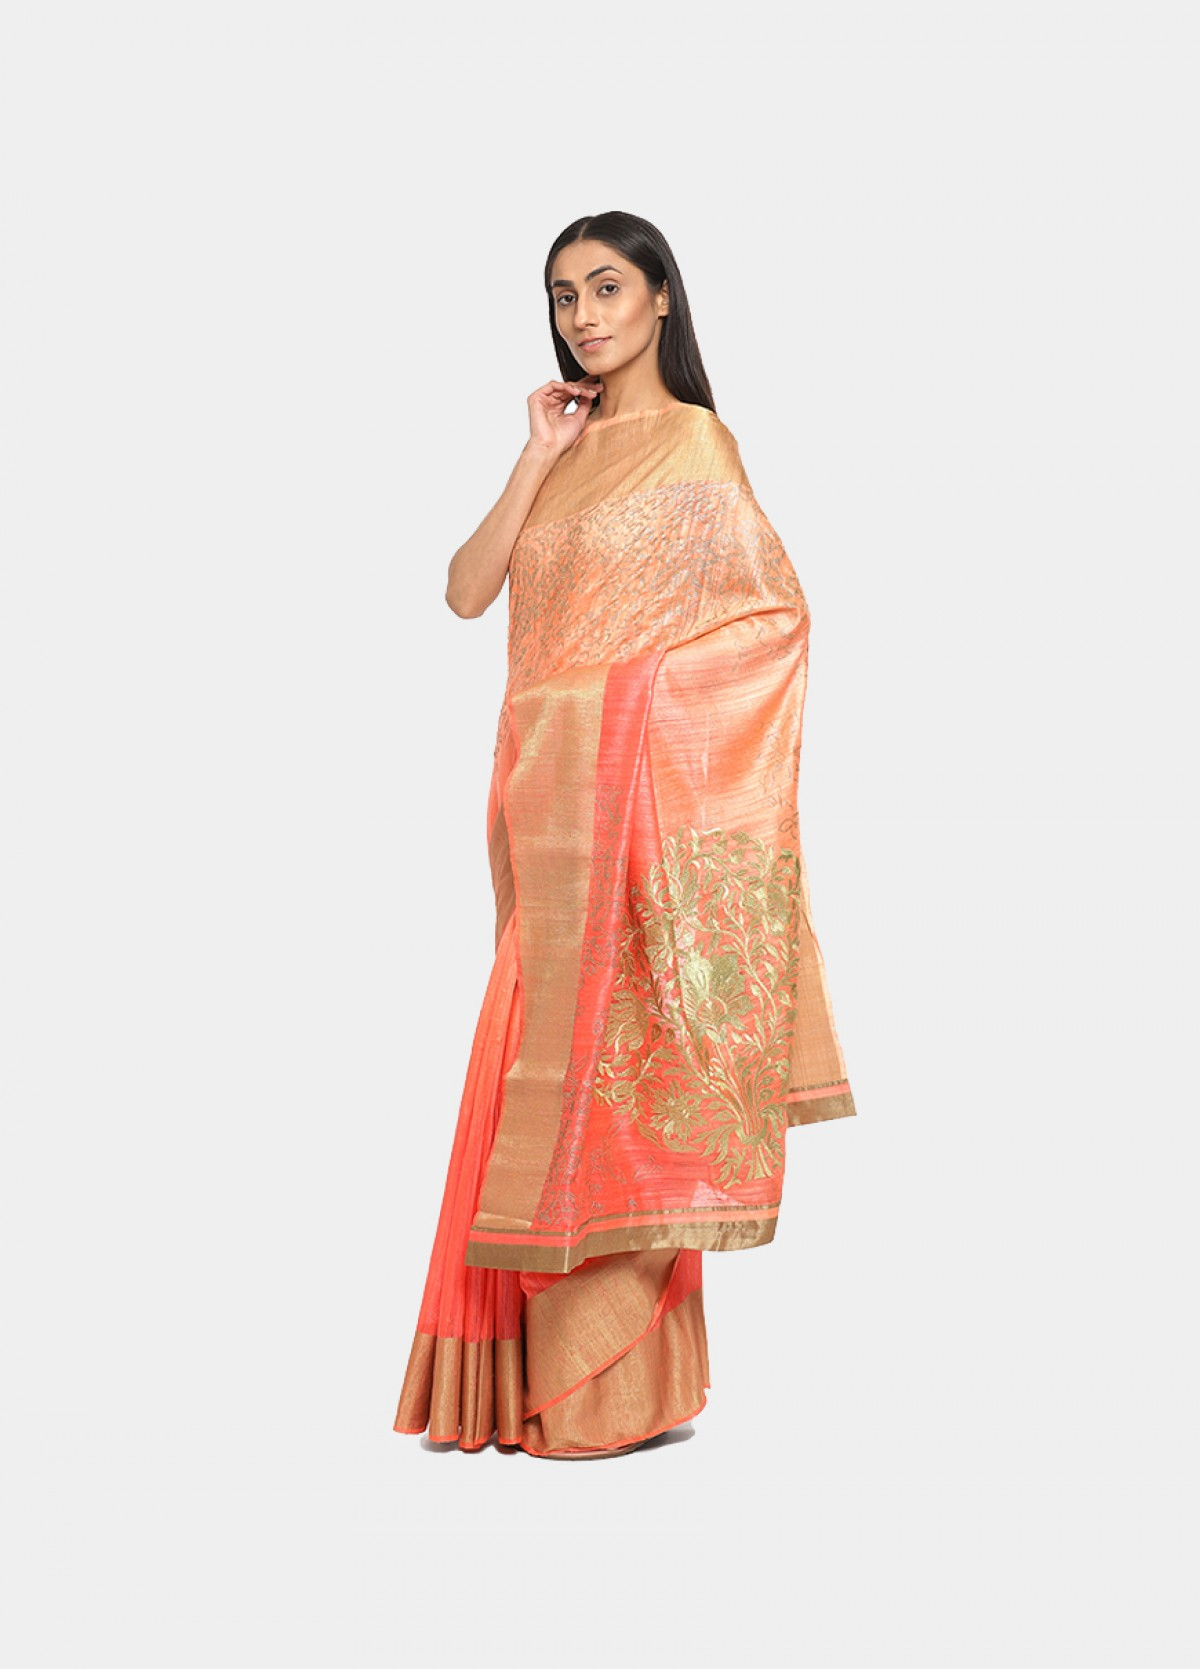 The Silk Pink Woven Embroidered Sari